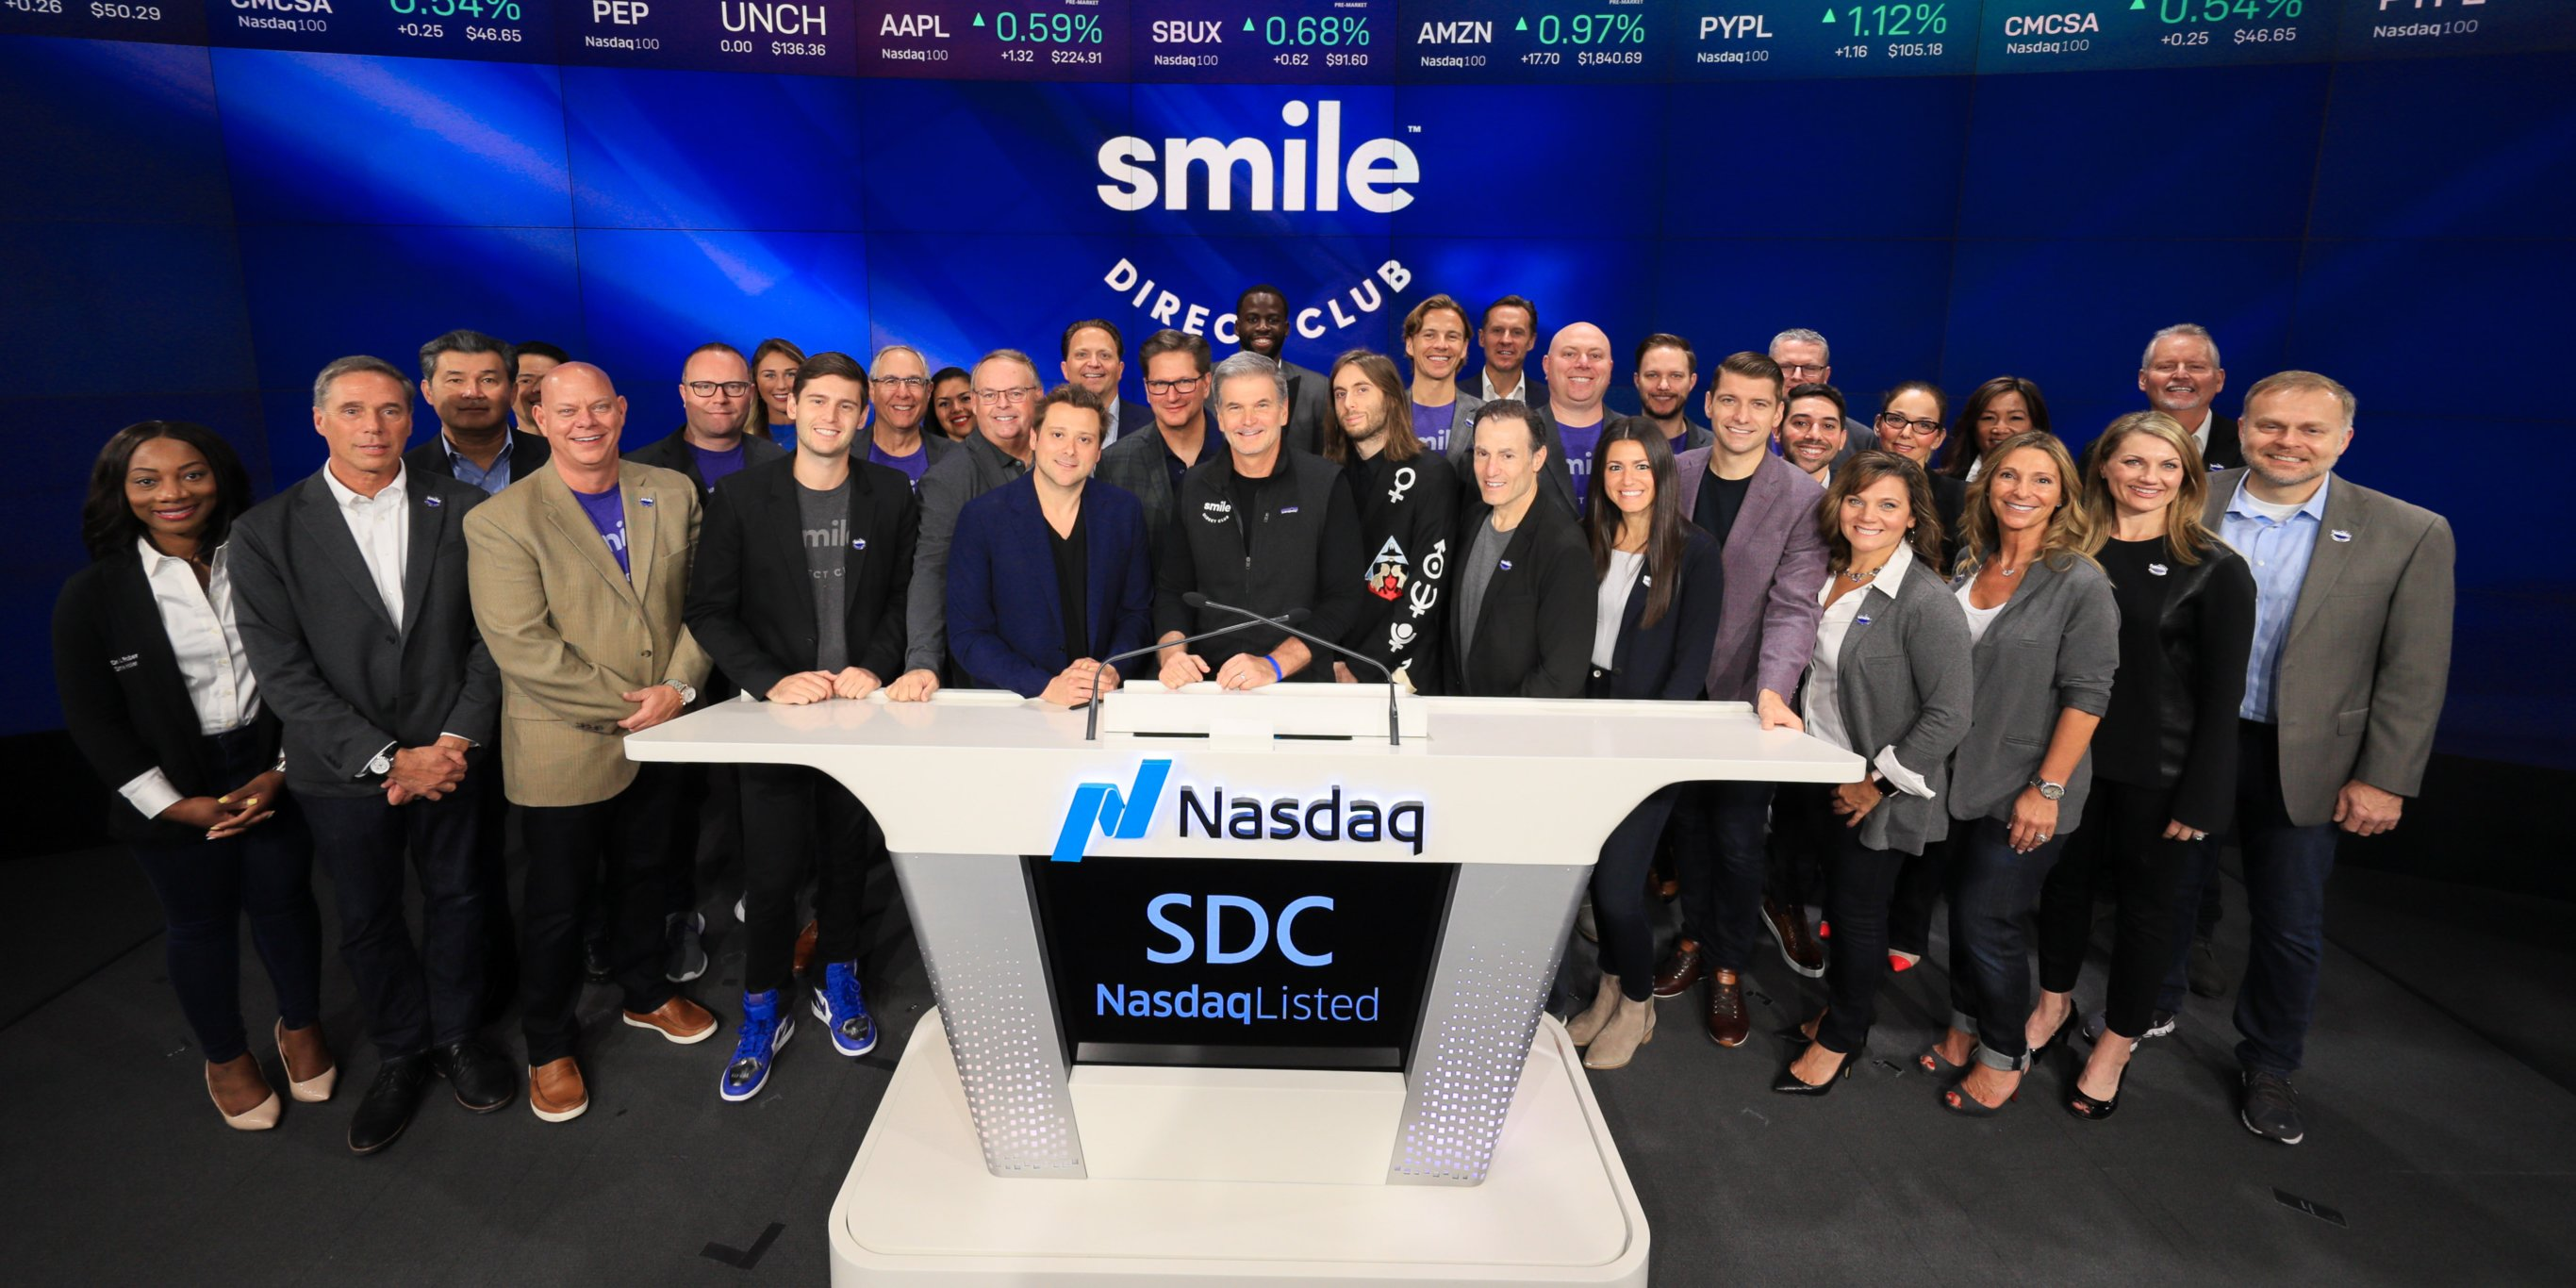 Buzzy healthcare startup SmileDirectClub just went public. Here are the execs and investors who stand to benefit the most.